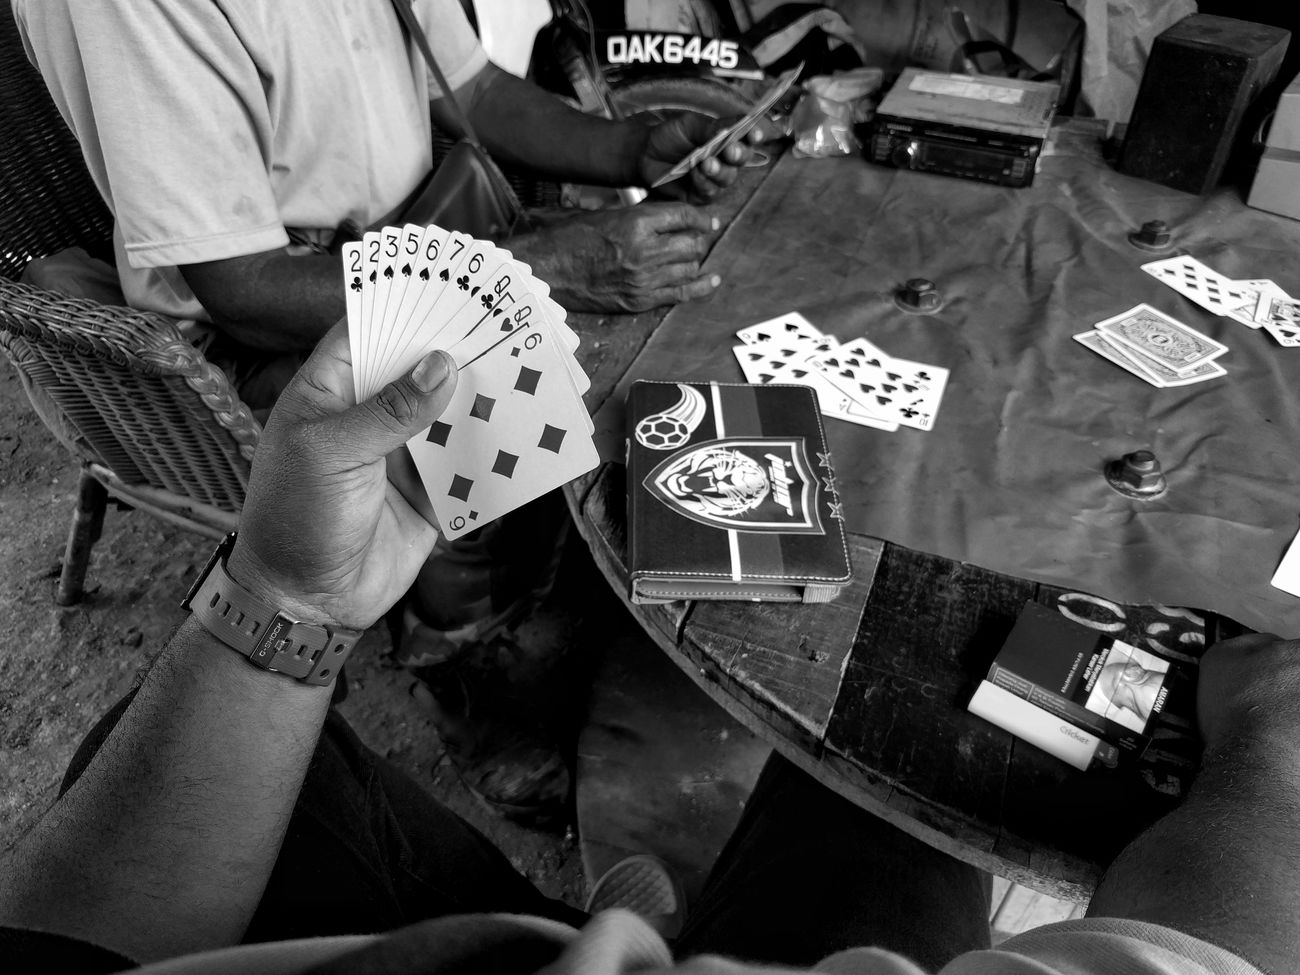 Leisure Games Leisure Activity Cards Lifestyles Luck My Smartphone Life Smartphonephotography Monochrome Photography